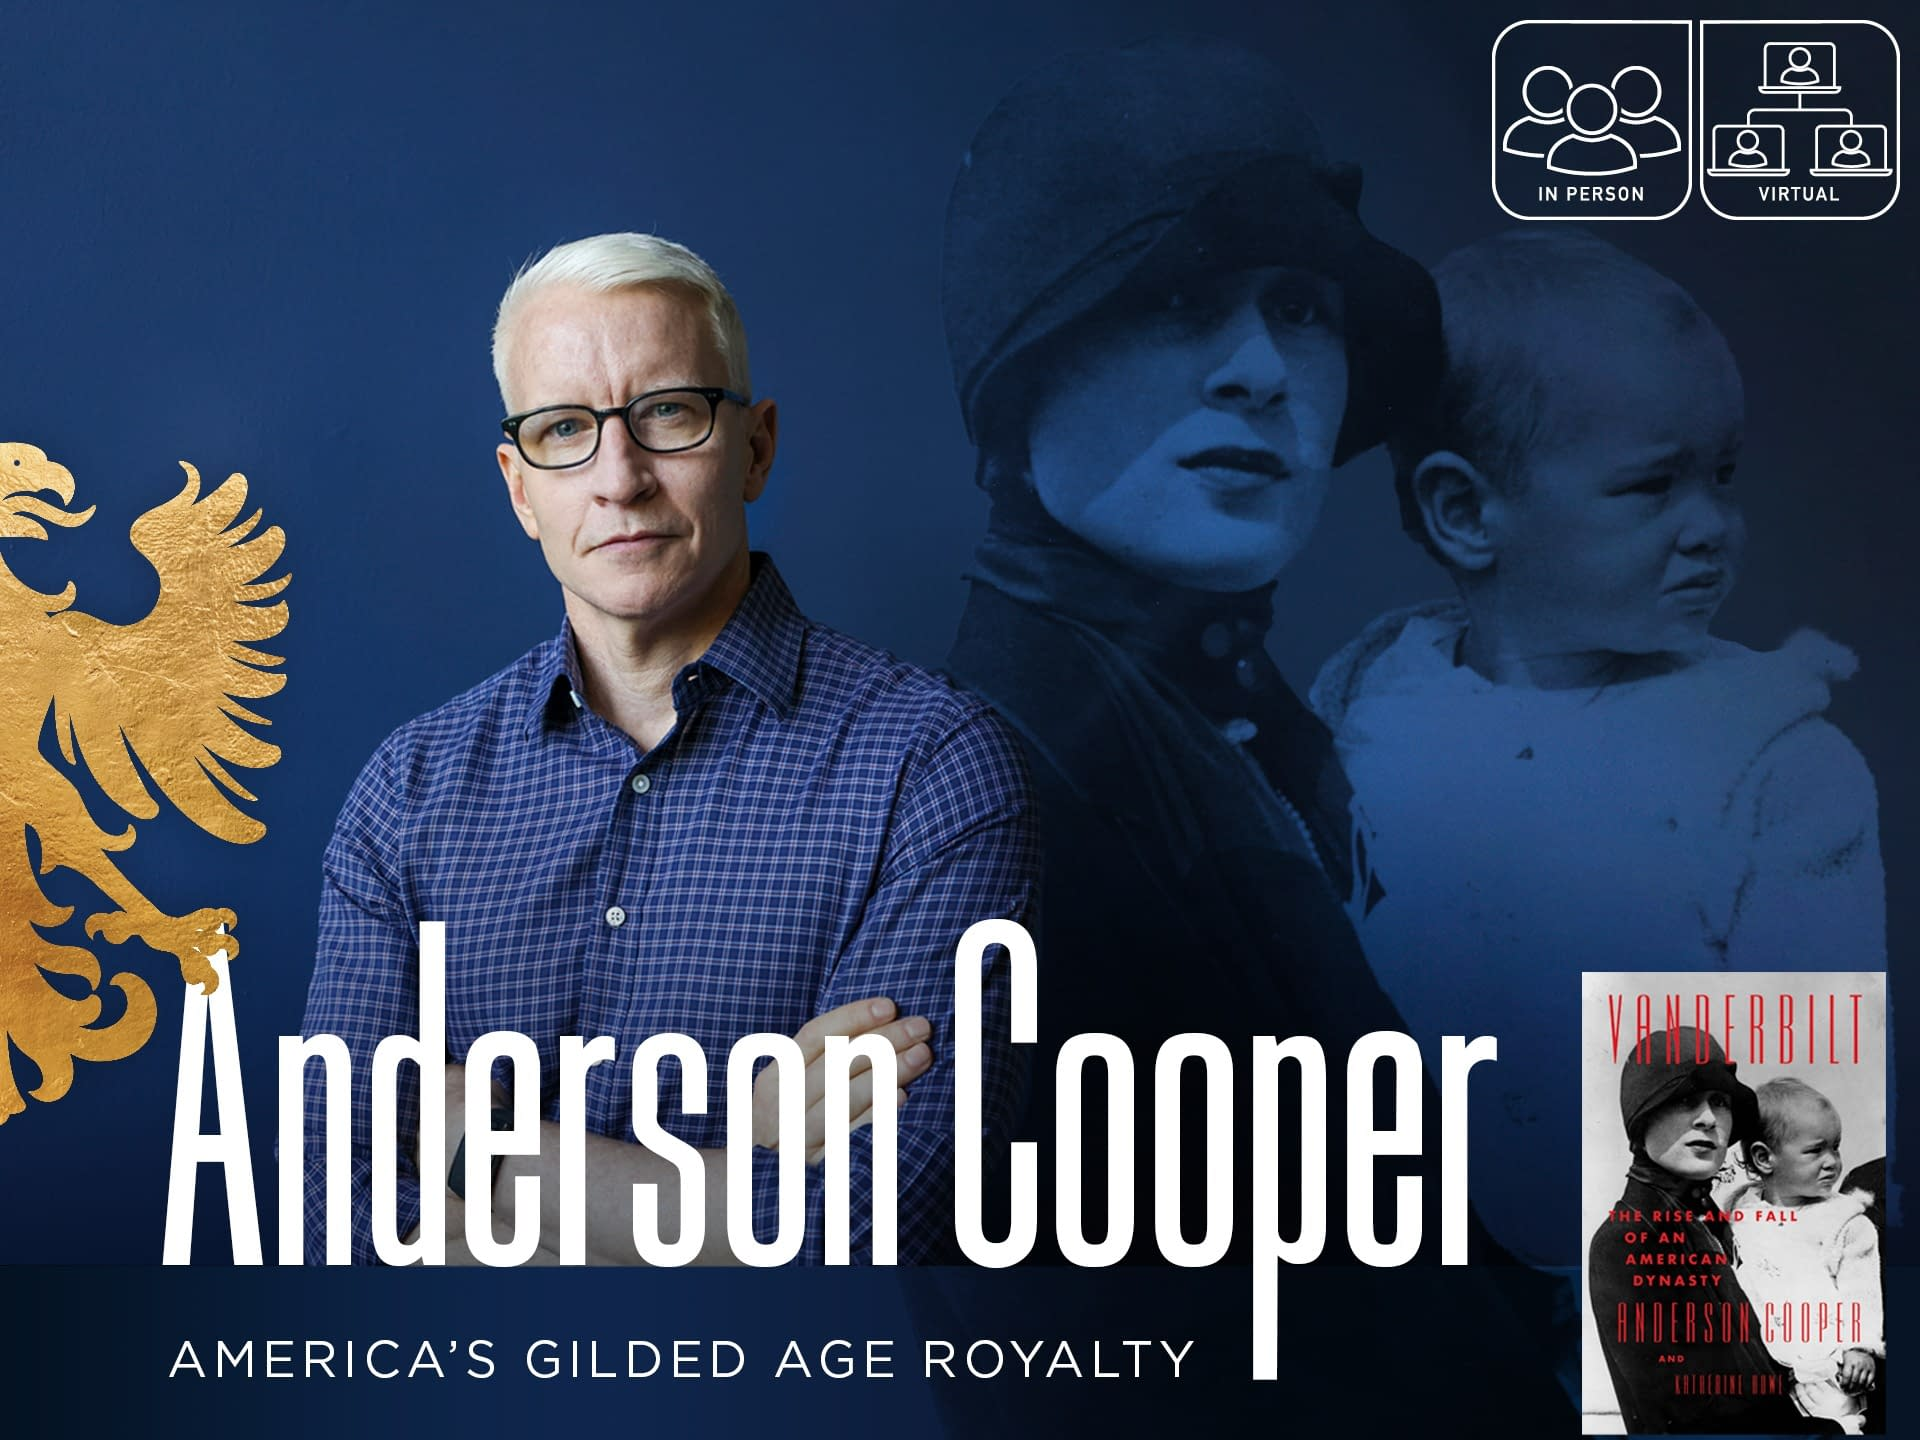 Anderson Cooper: America's Gilded Age Royalty 3 - - author